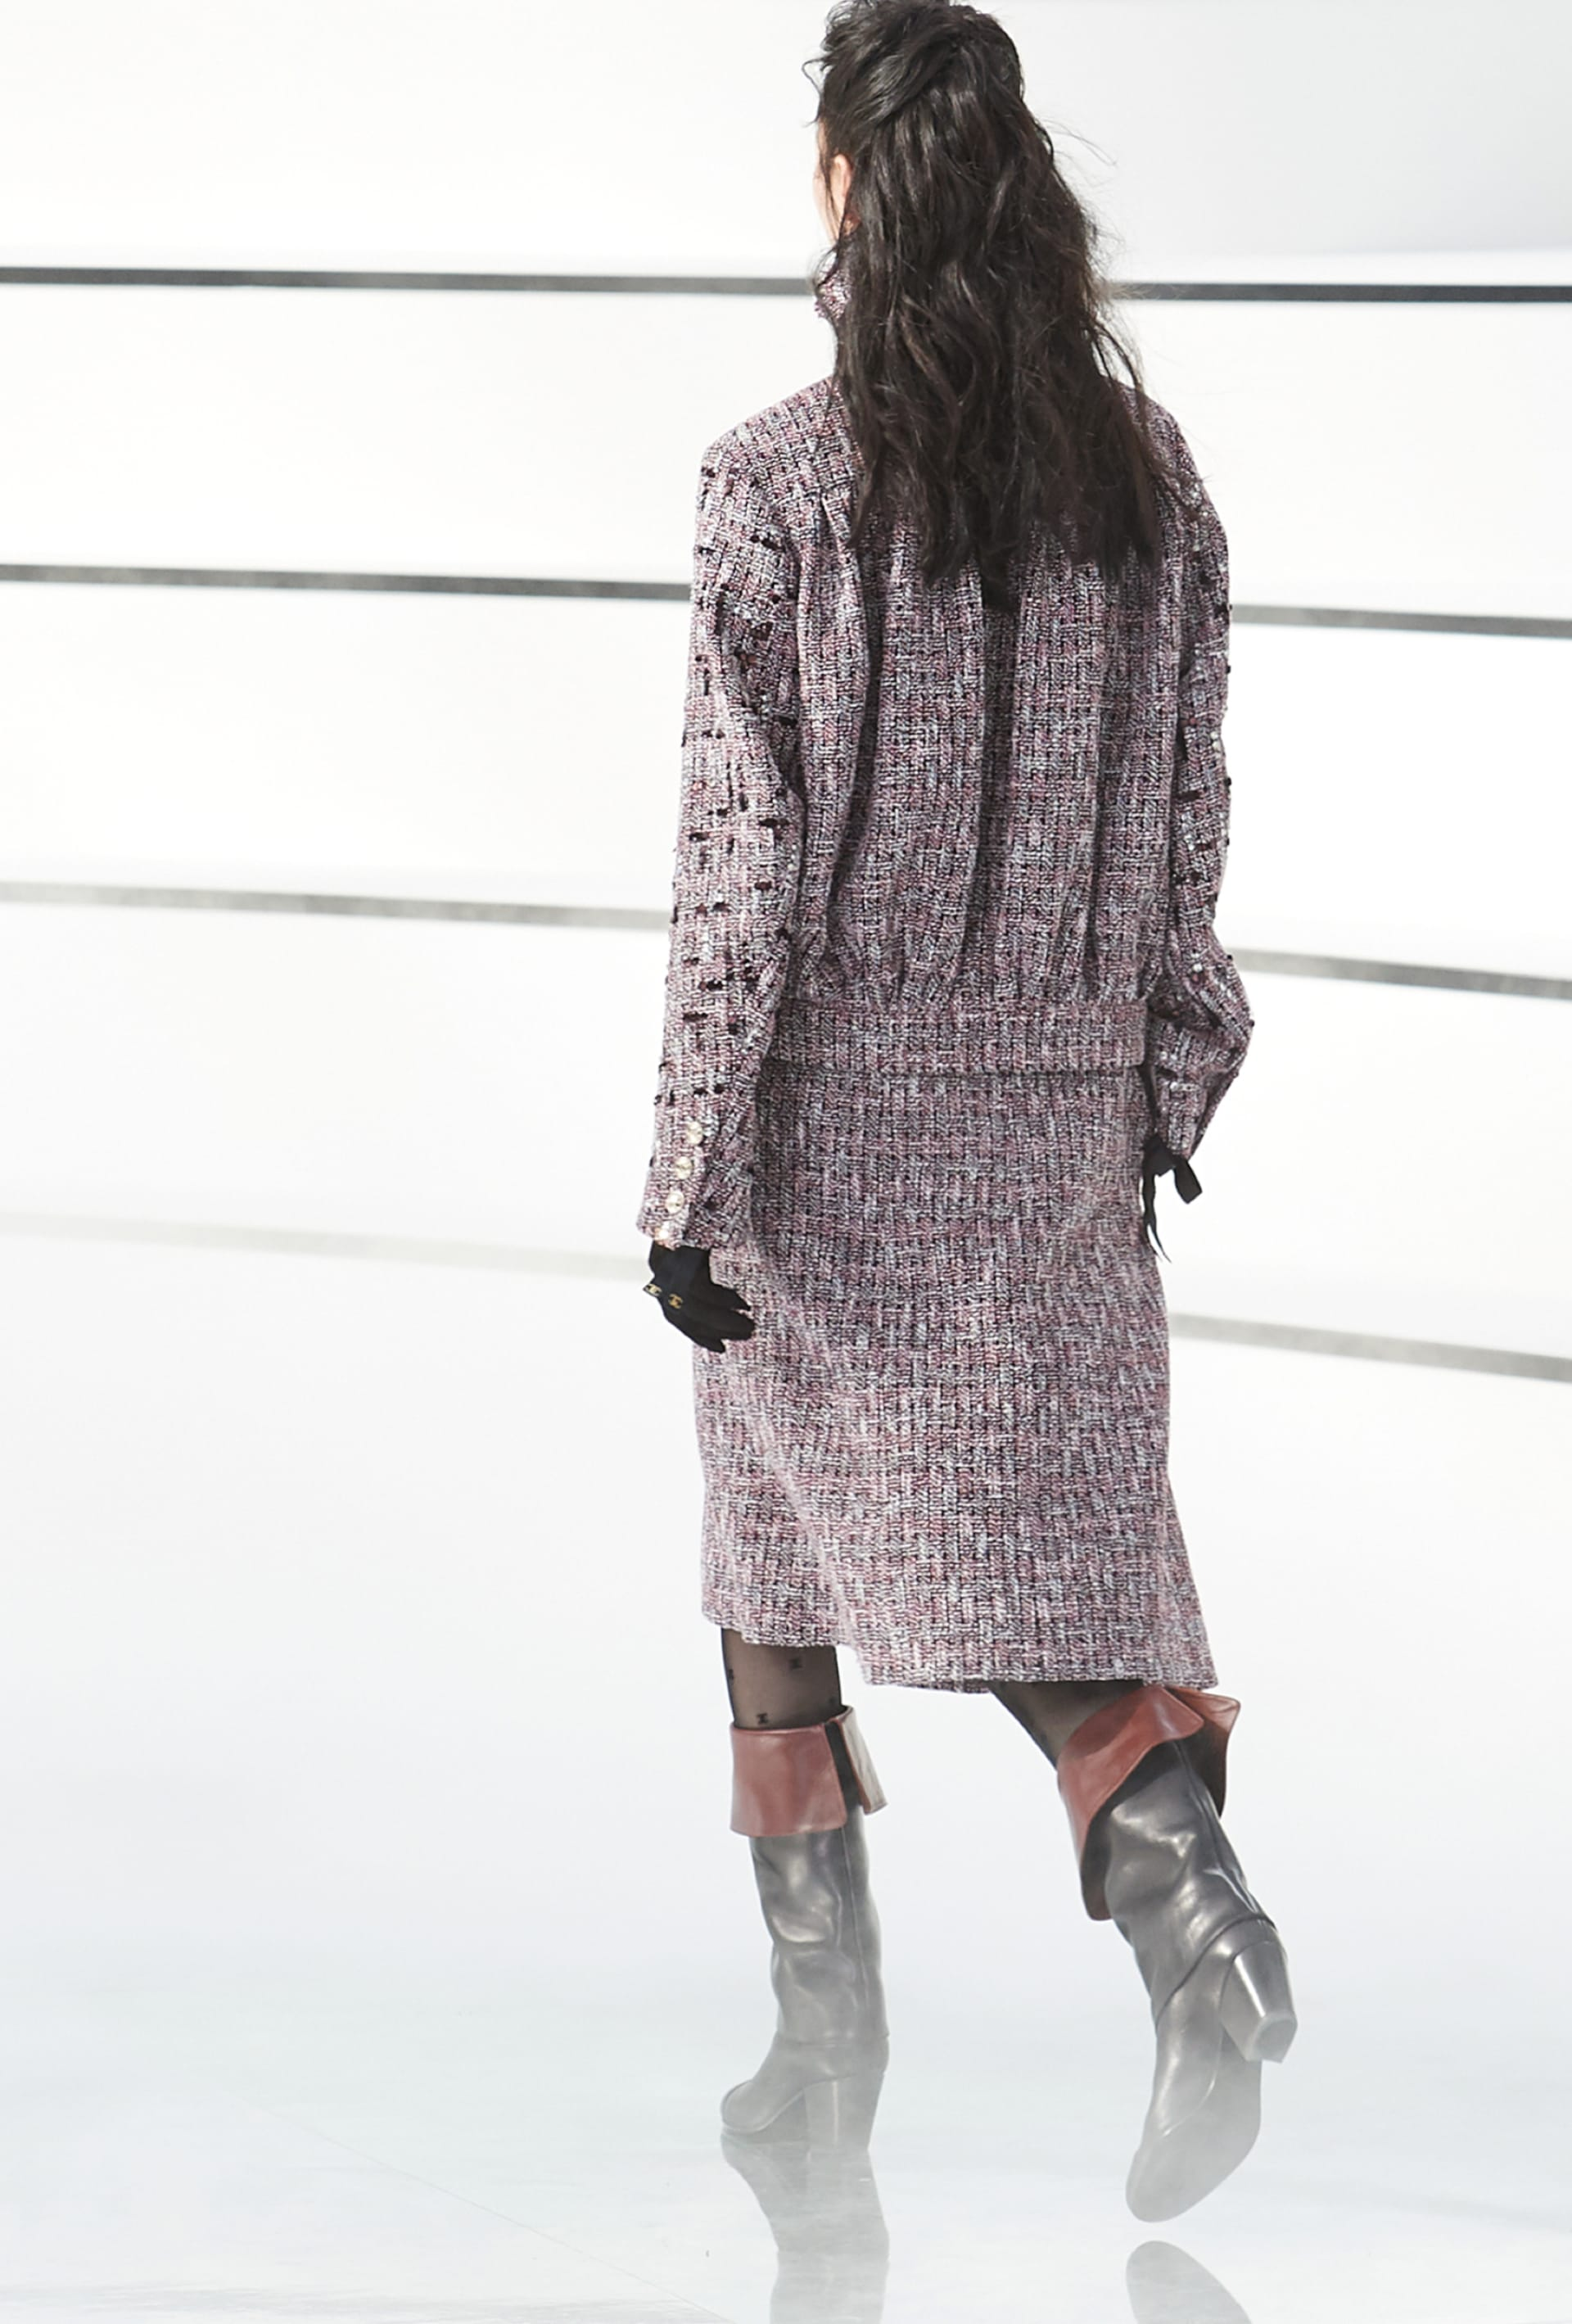 Additional image 3 - Look  31 -  - Fall-Winter 2020/21